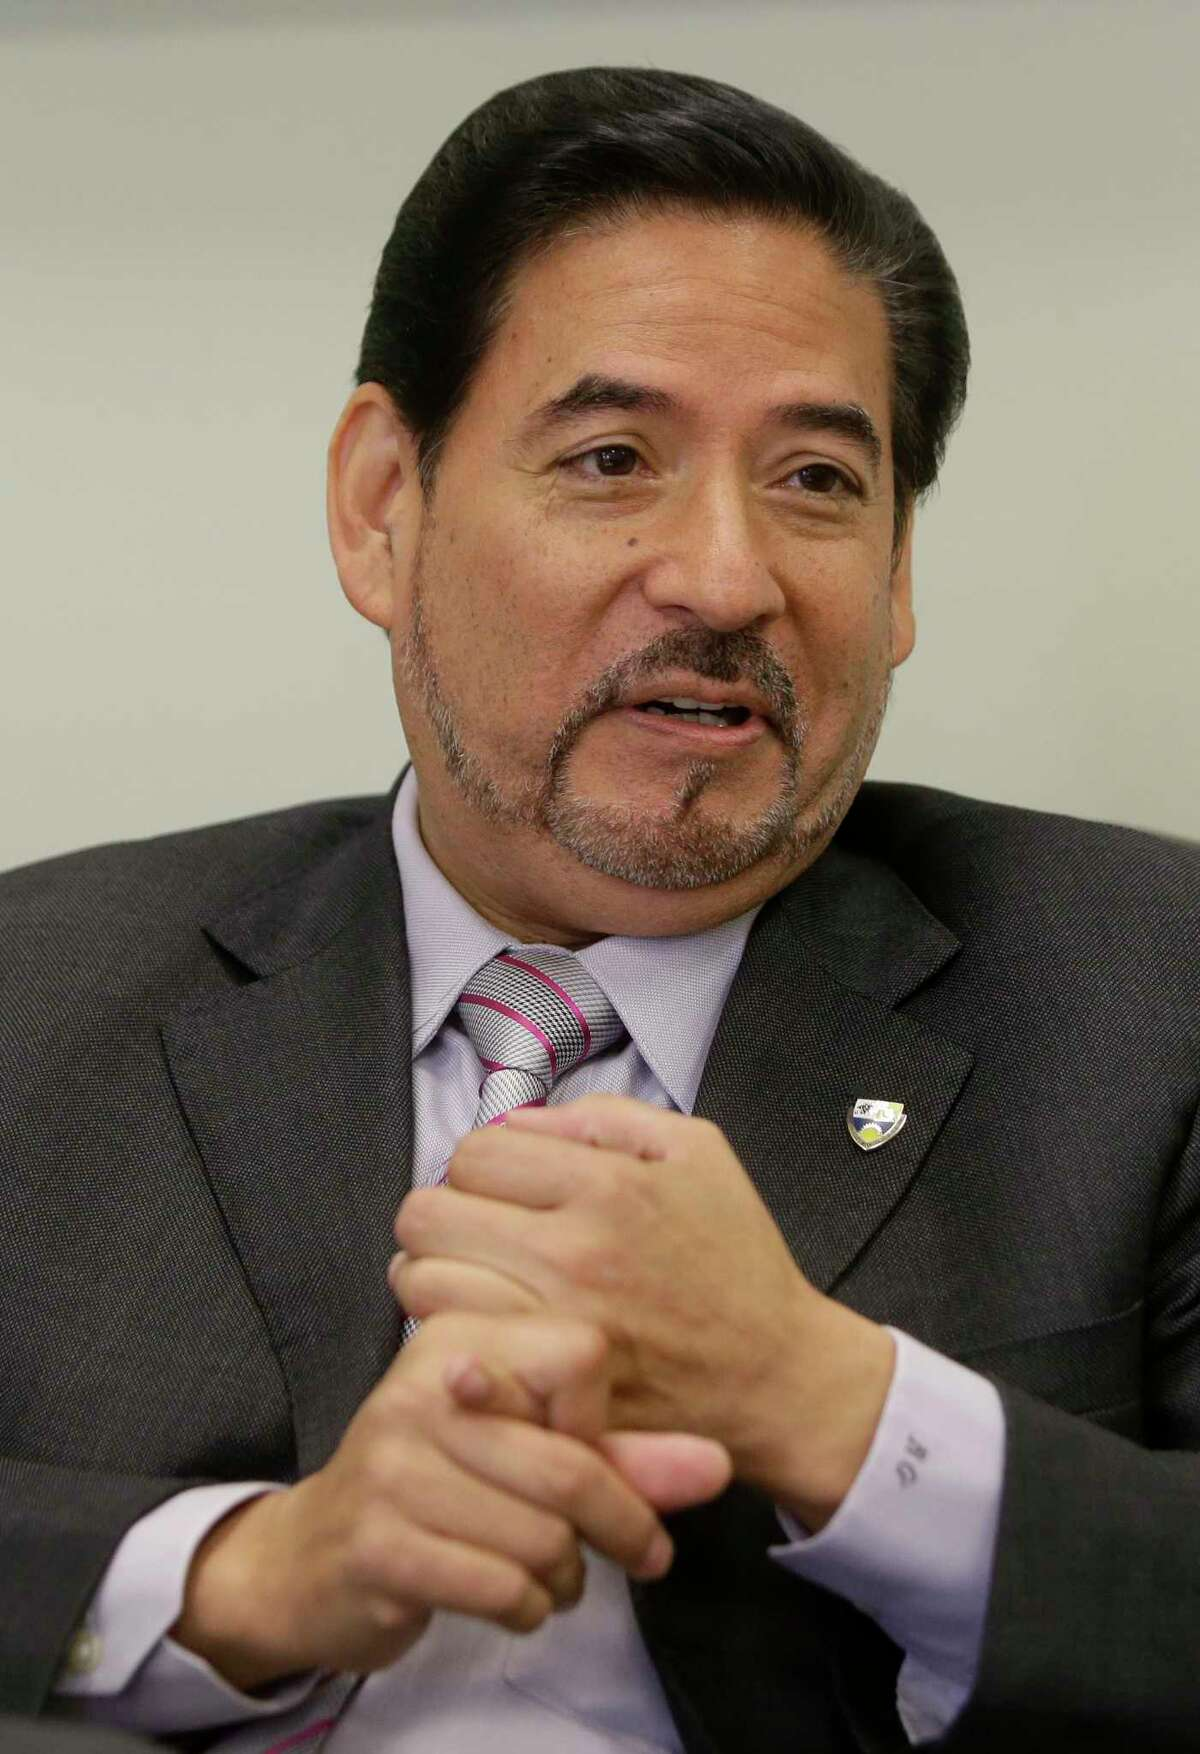 Richard Garza, CEO and superintendent of Houston Gateway Academy, shown here in April 2017 file photo. ( Melissa Phillip / Houston Chronicle )